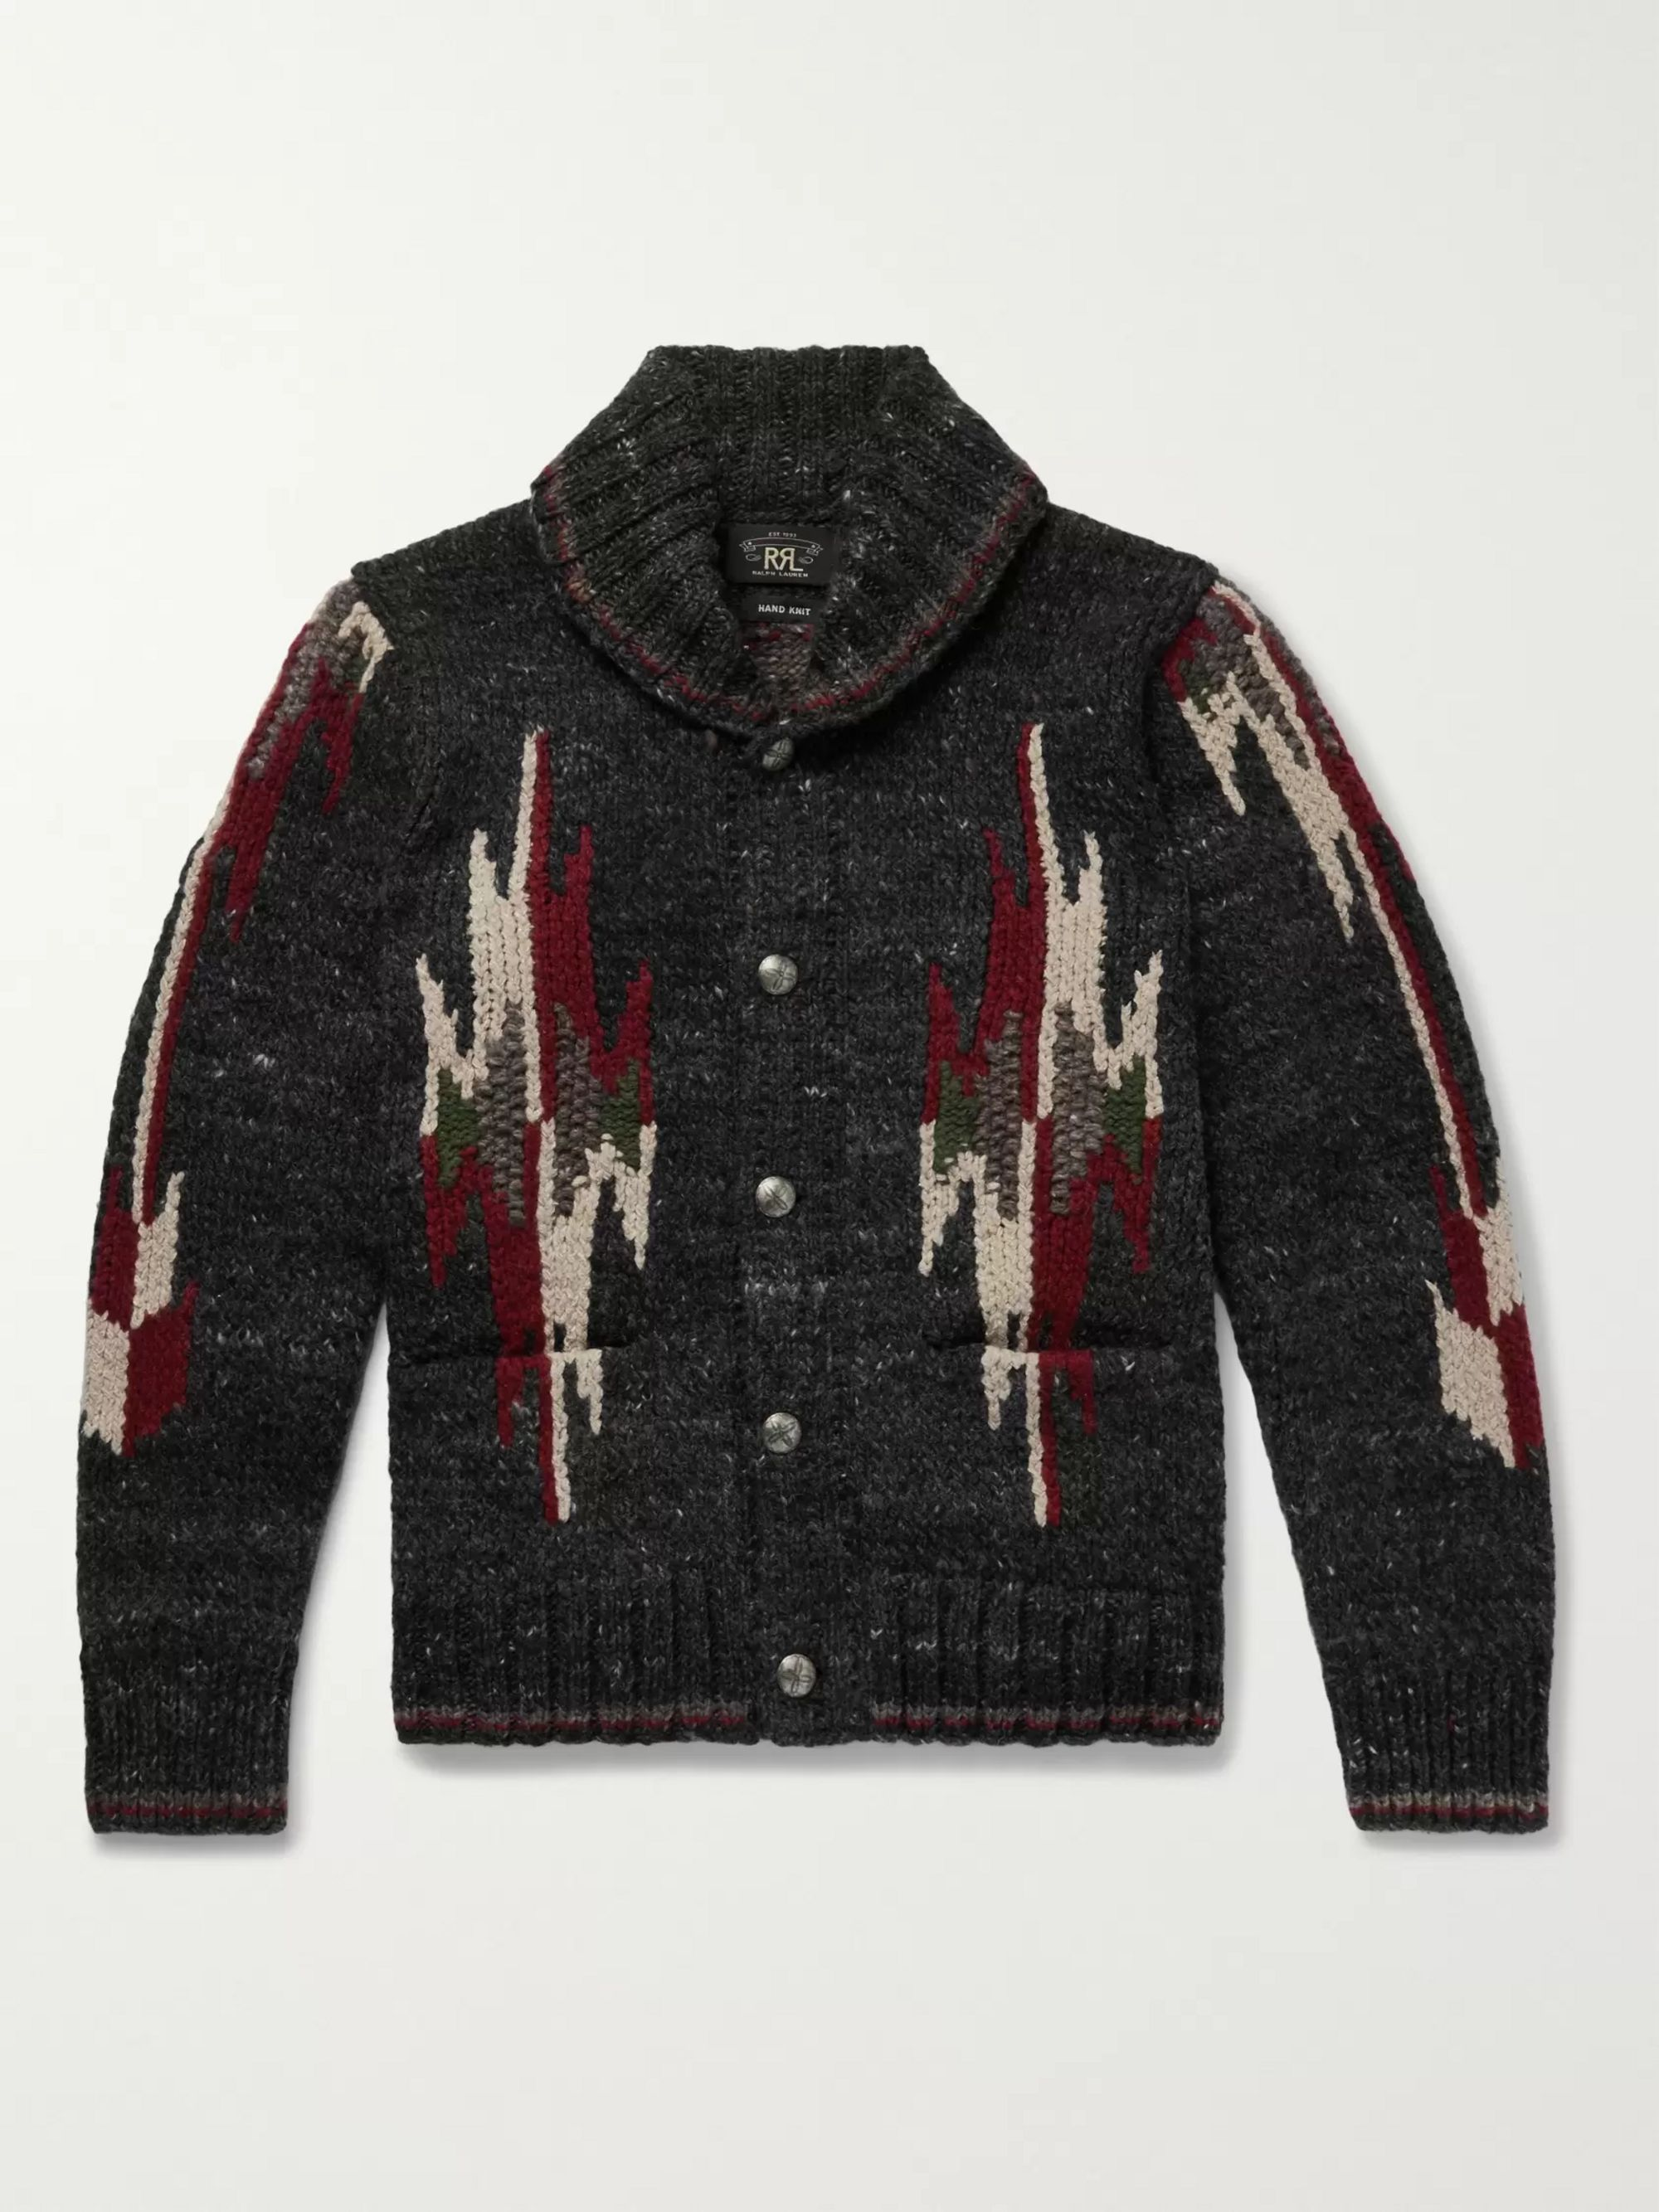 Shawl Collar Wool And Silk Blend Jacquard Cardigan by Rrl